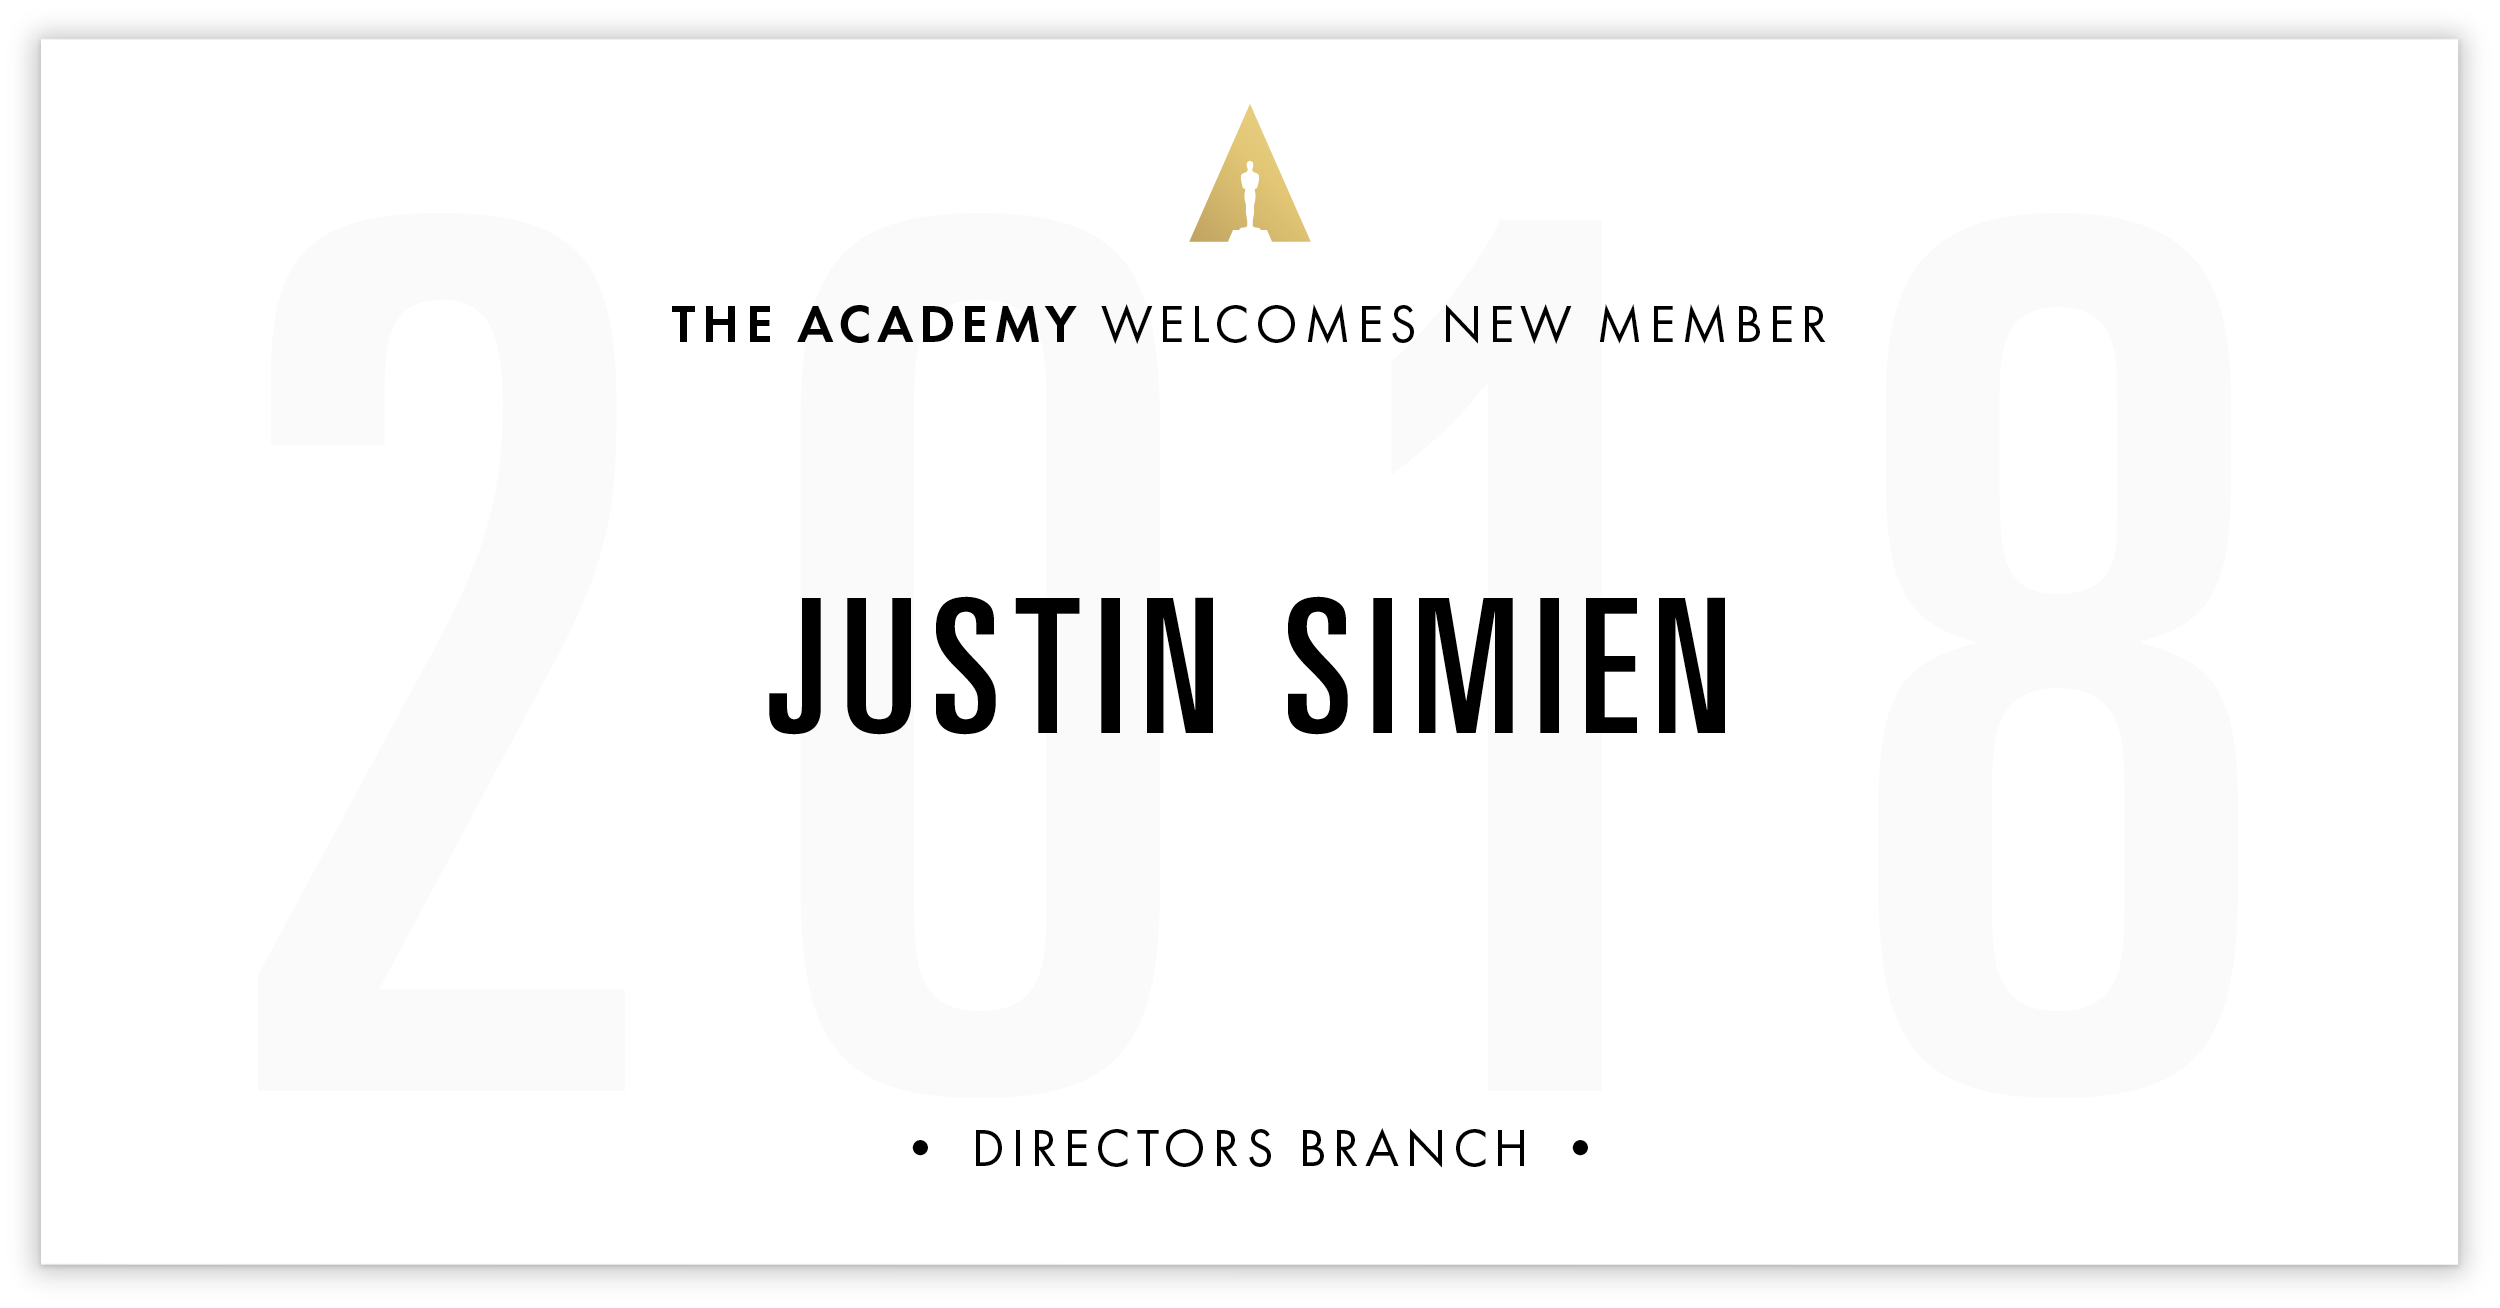 Justin Simien is invited!